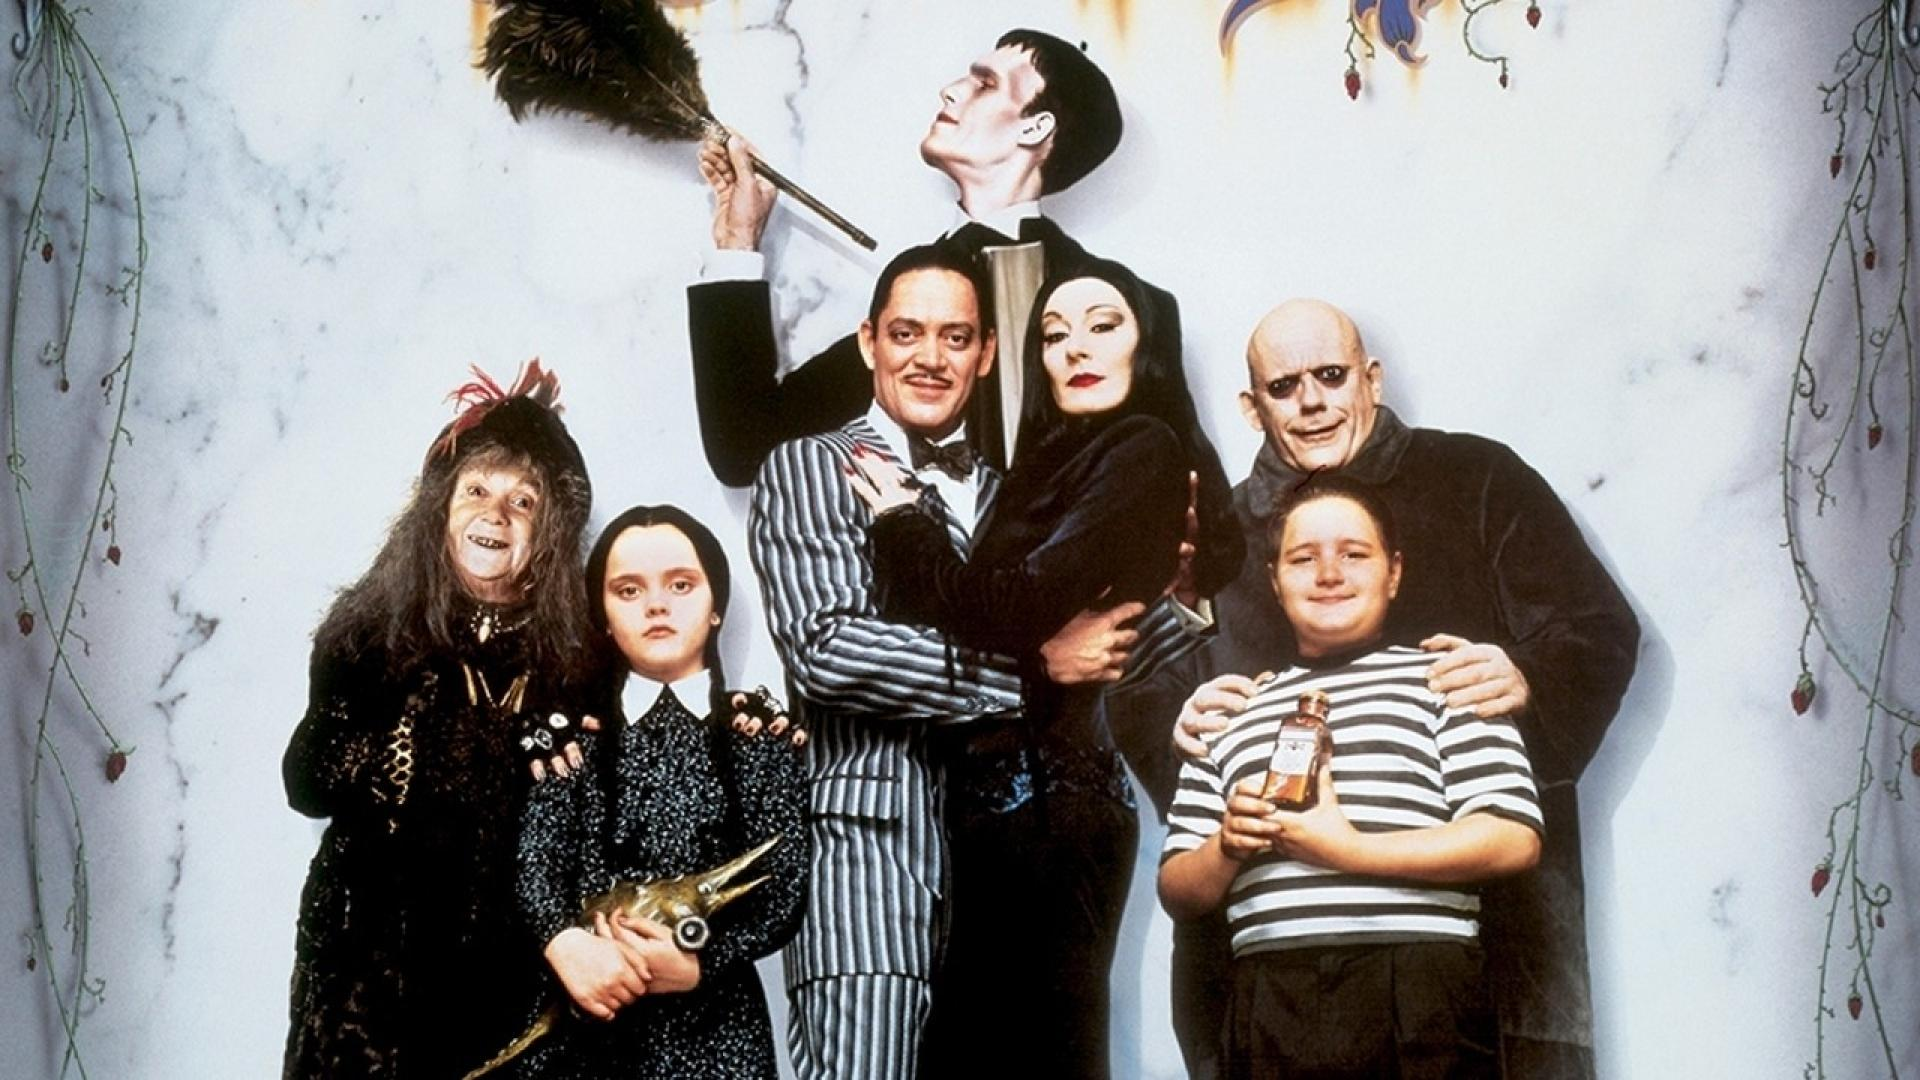 The Addams Family 1-2. (1991, 1993)